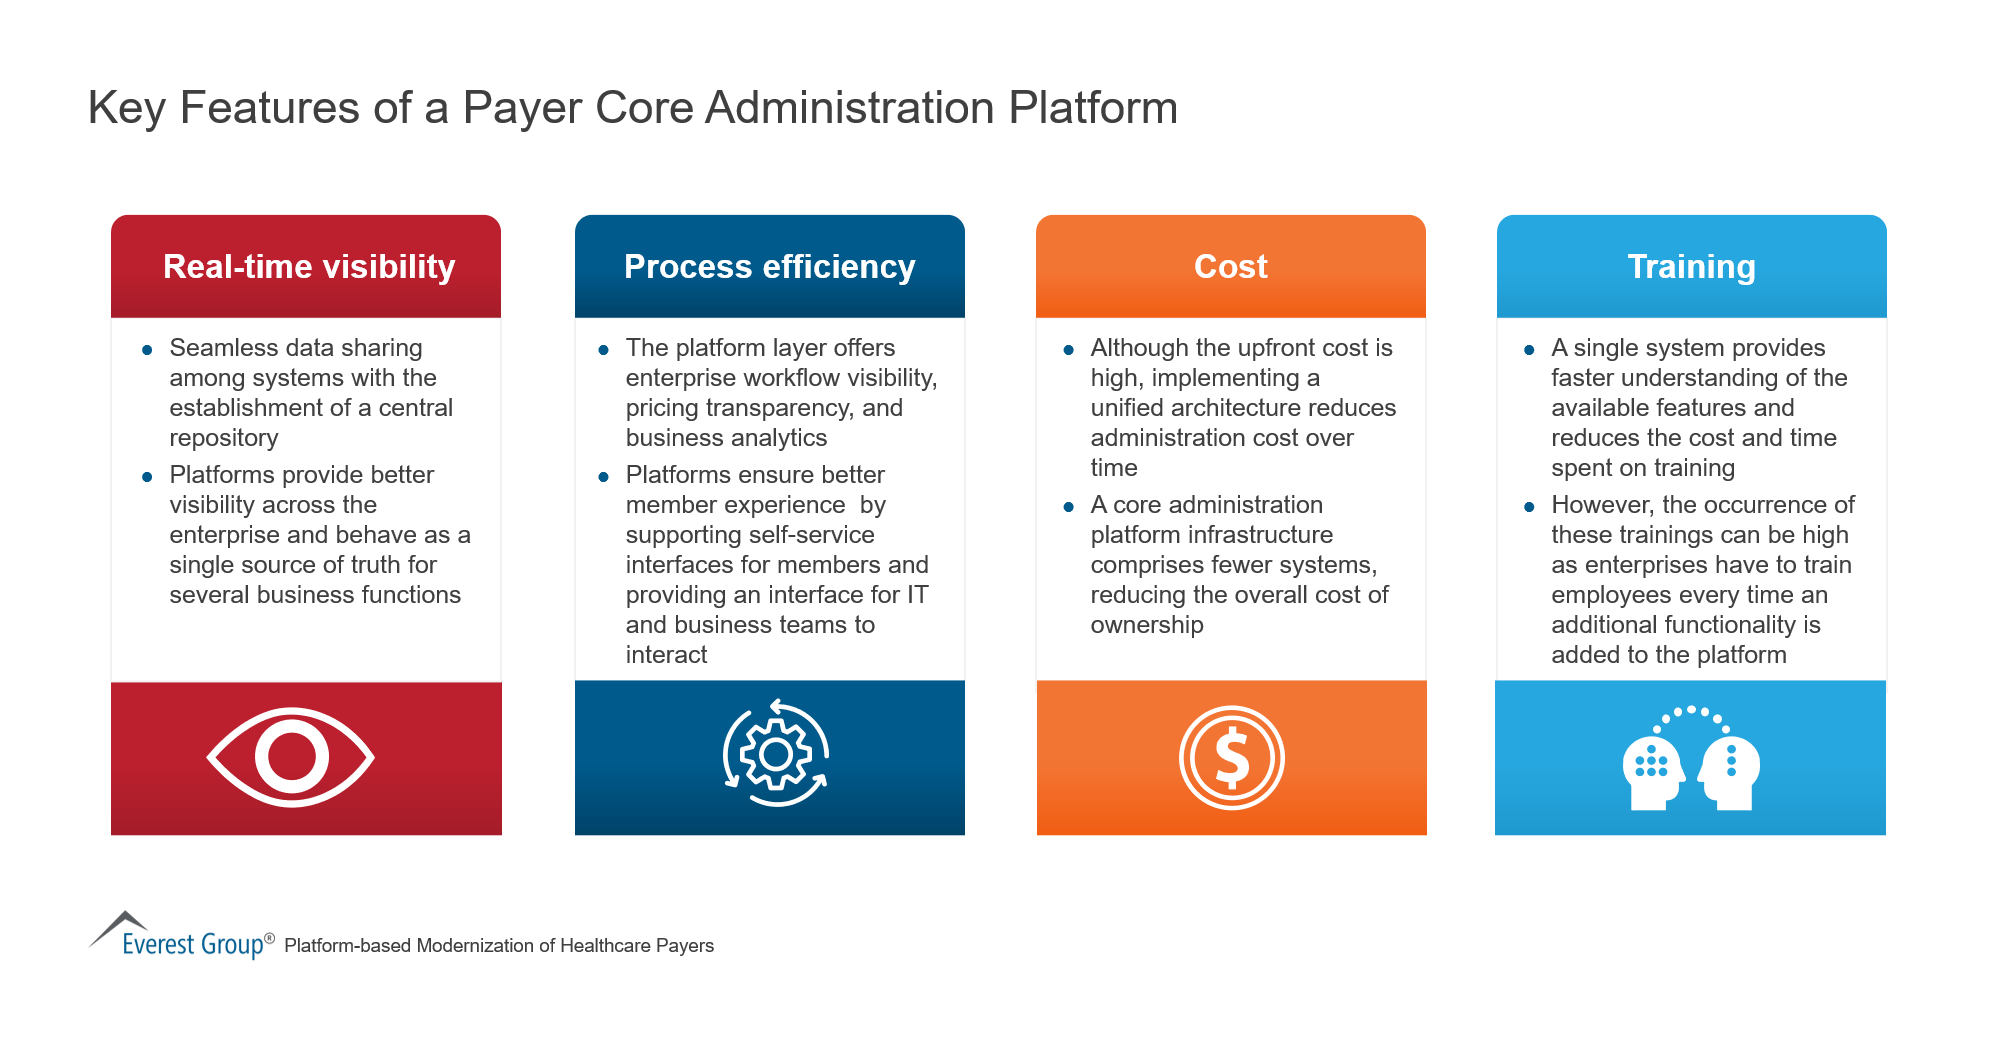 Key Features of a Payer Core Administration Platform